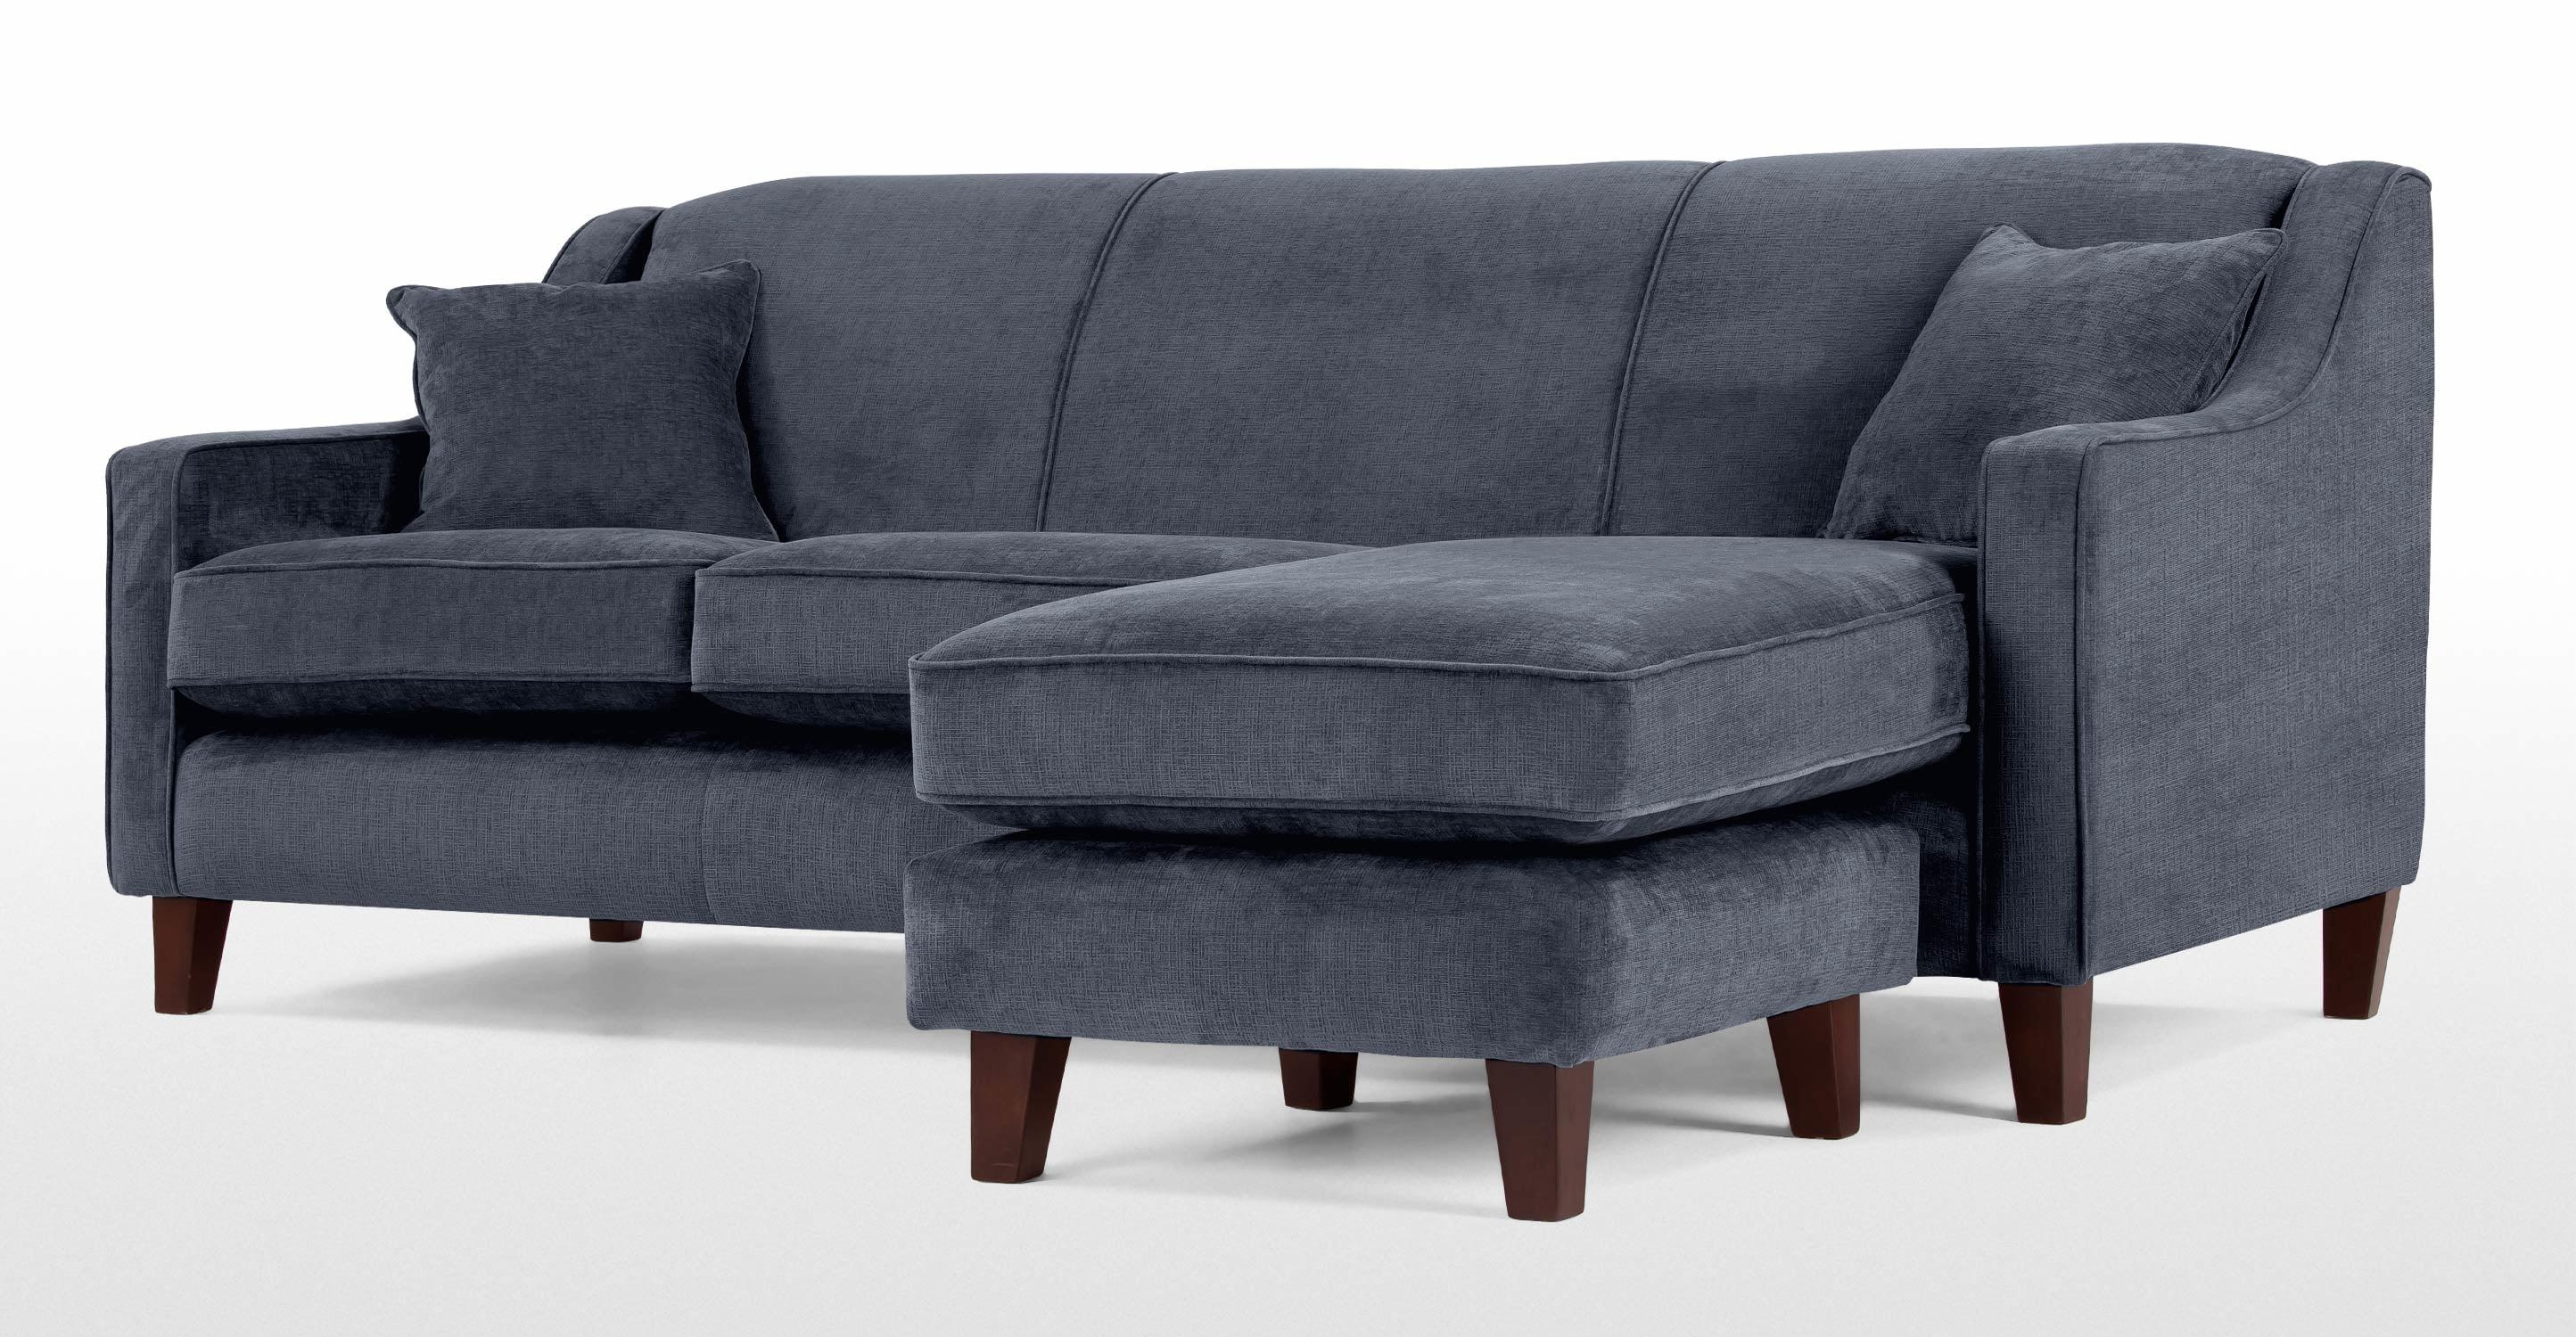 Halston Large Corner Sofa In Midnight Blue | Made For Midnight Blue Sofas (View 17 of 20)